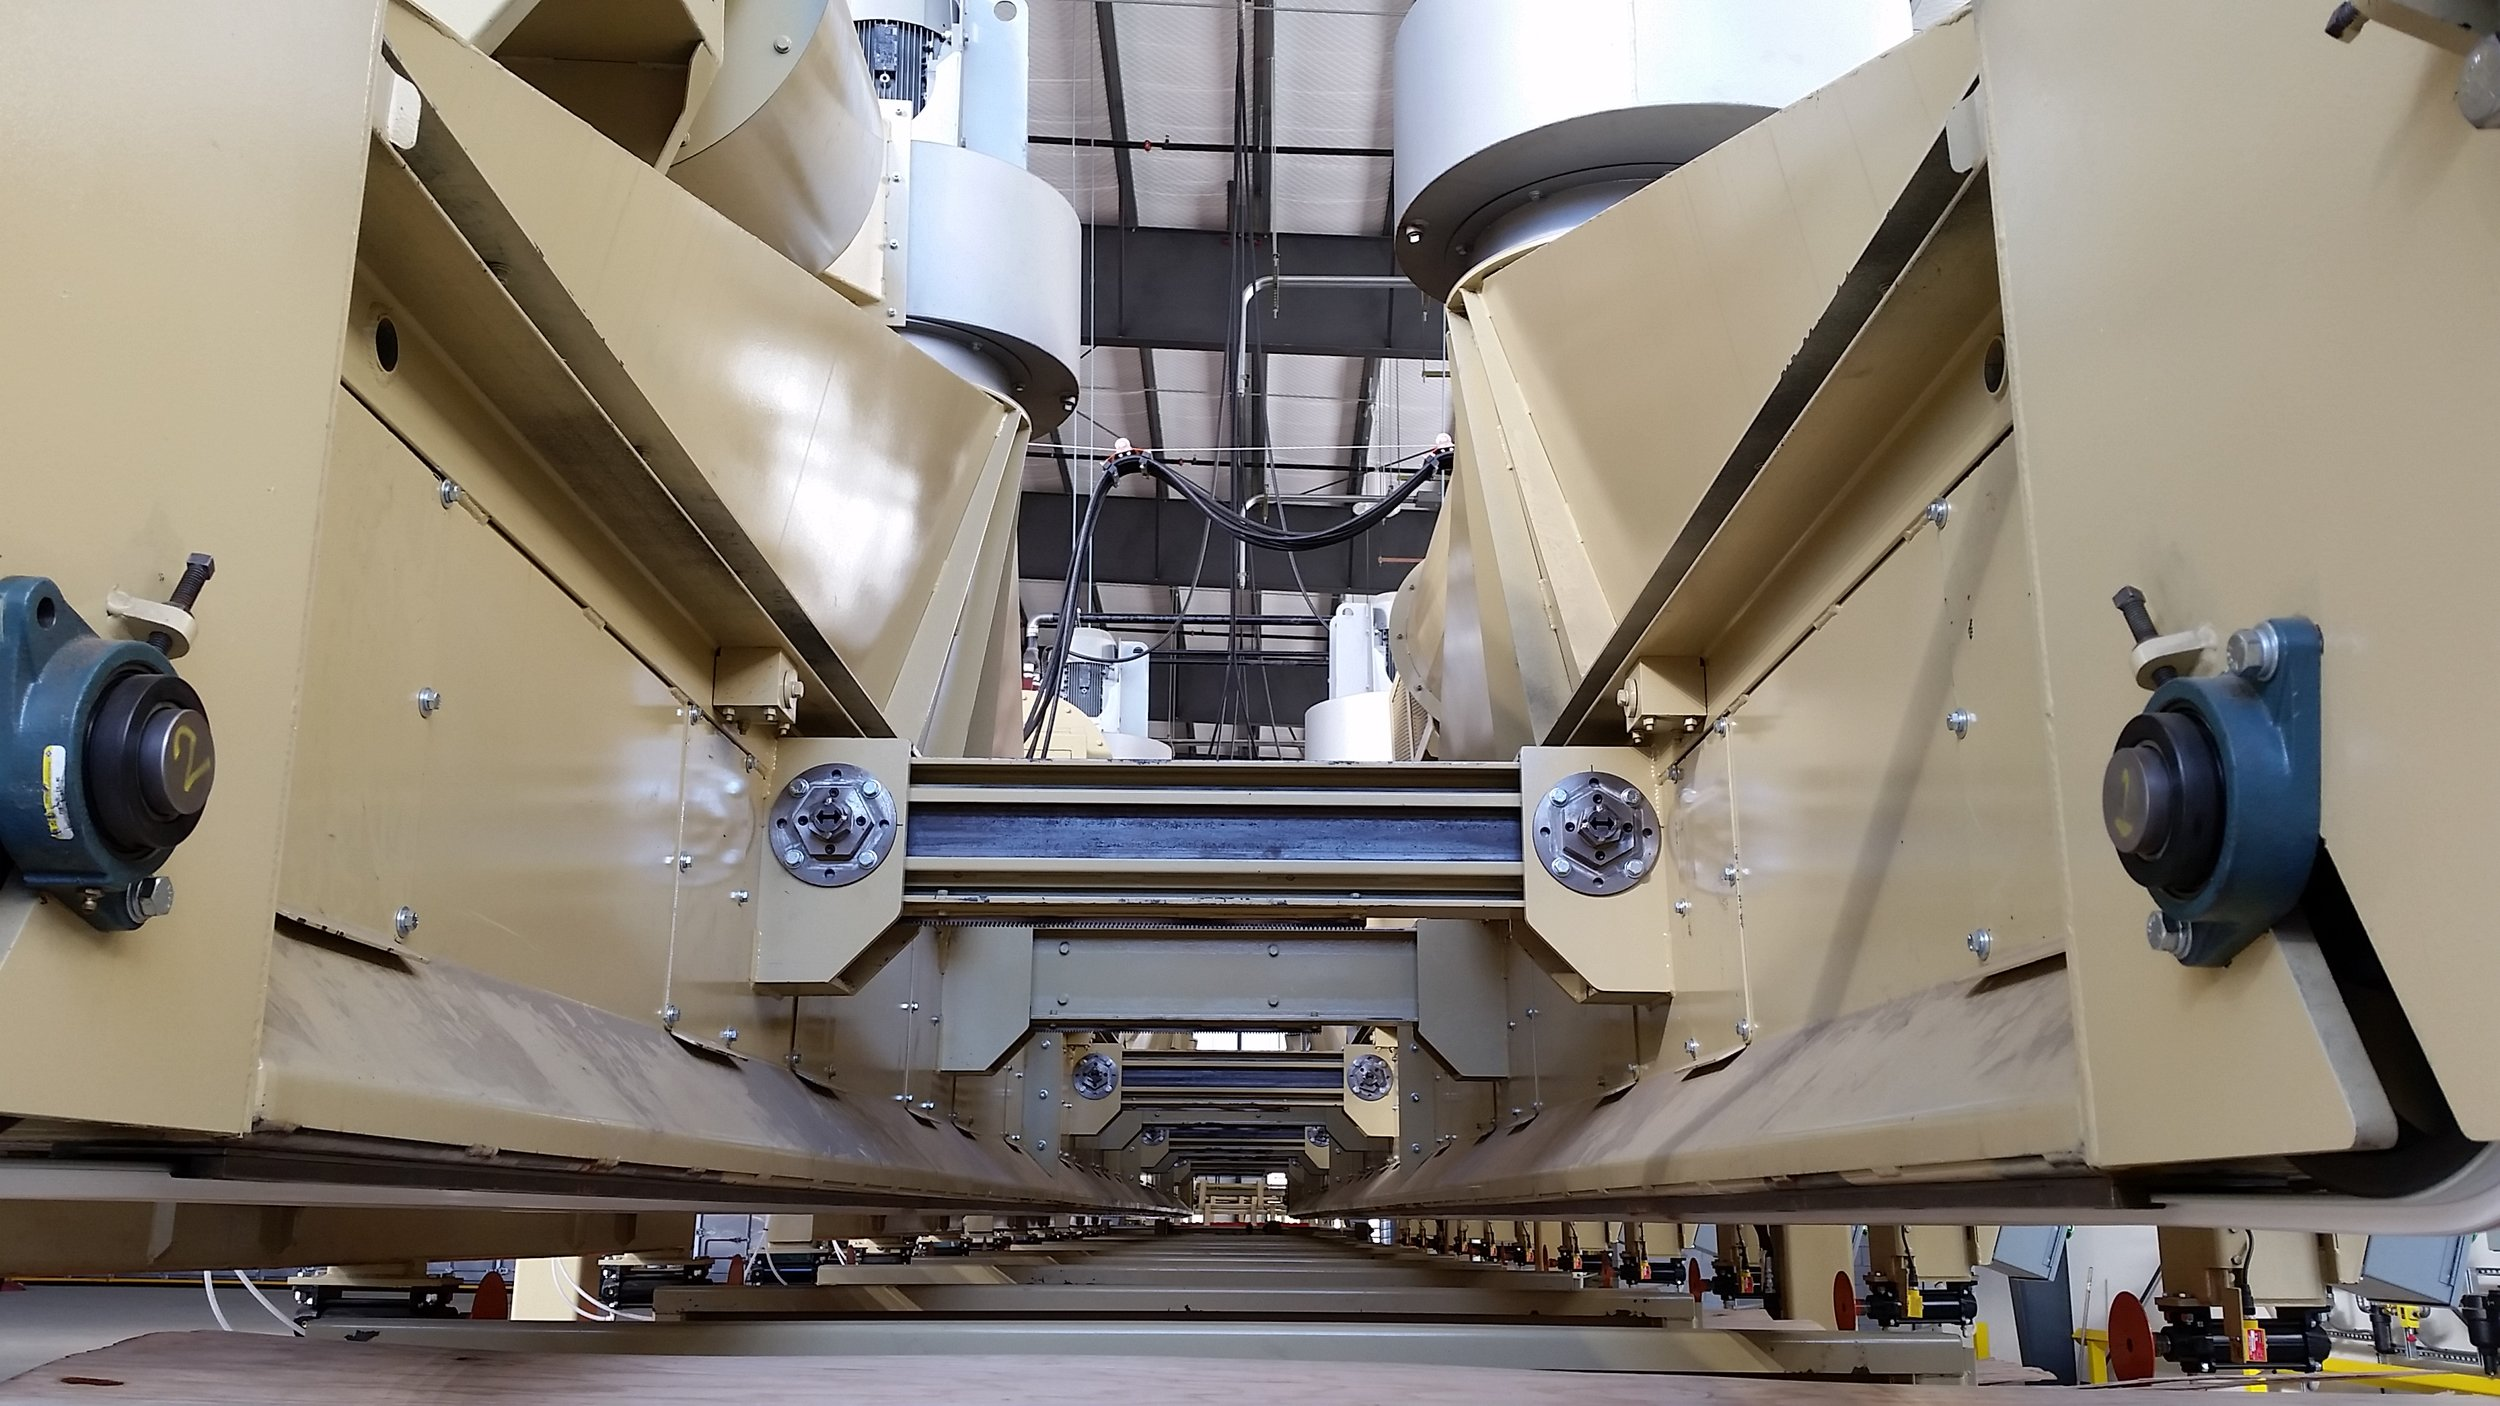 Adjustable plenum on Sweed's Versatile Veneer Stacker - Traditional stackers have a single, fixed air plenum and belts that create negative air suction to lift and hold the sheets for stacking. The 12-bin Sweed Versatile Veneer Stacker incorporates two independent plenums mounted on arbors within a frame, and the plenums can be adjusted to handle any sheet size from 4 ft. 27s up to 10 ft. 54s.